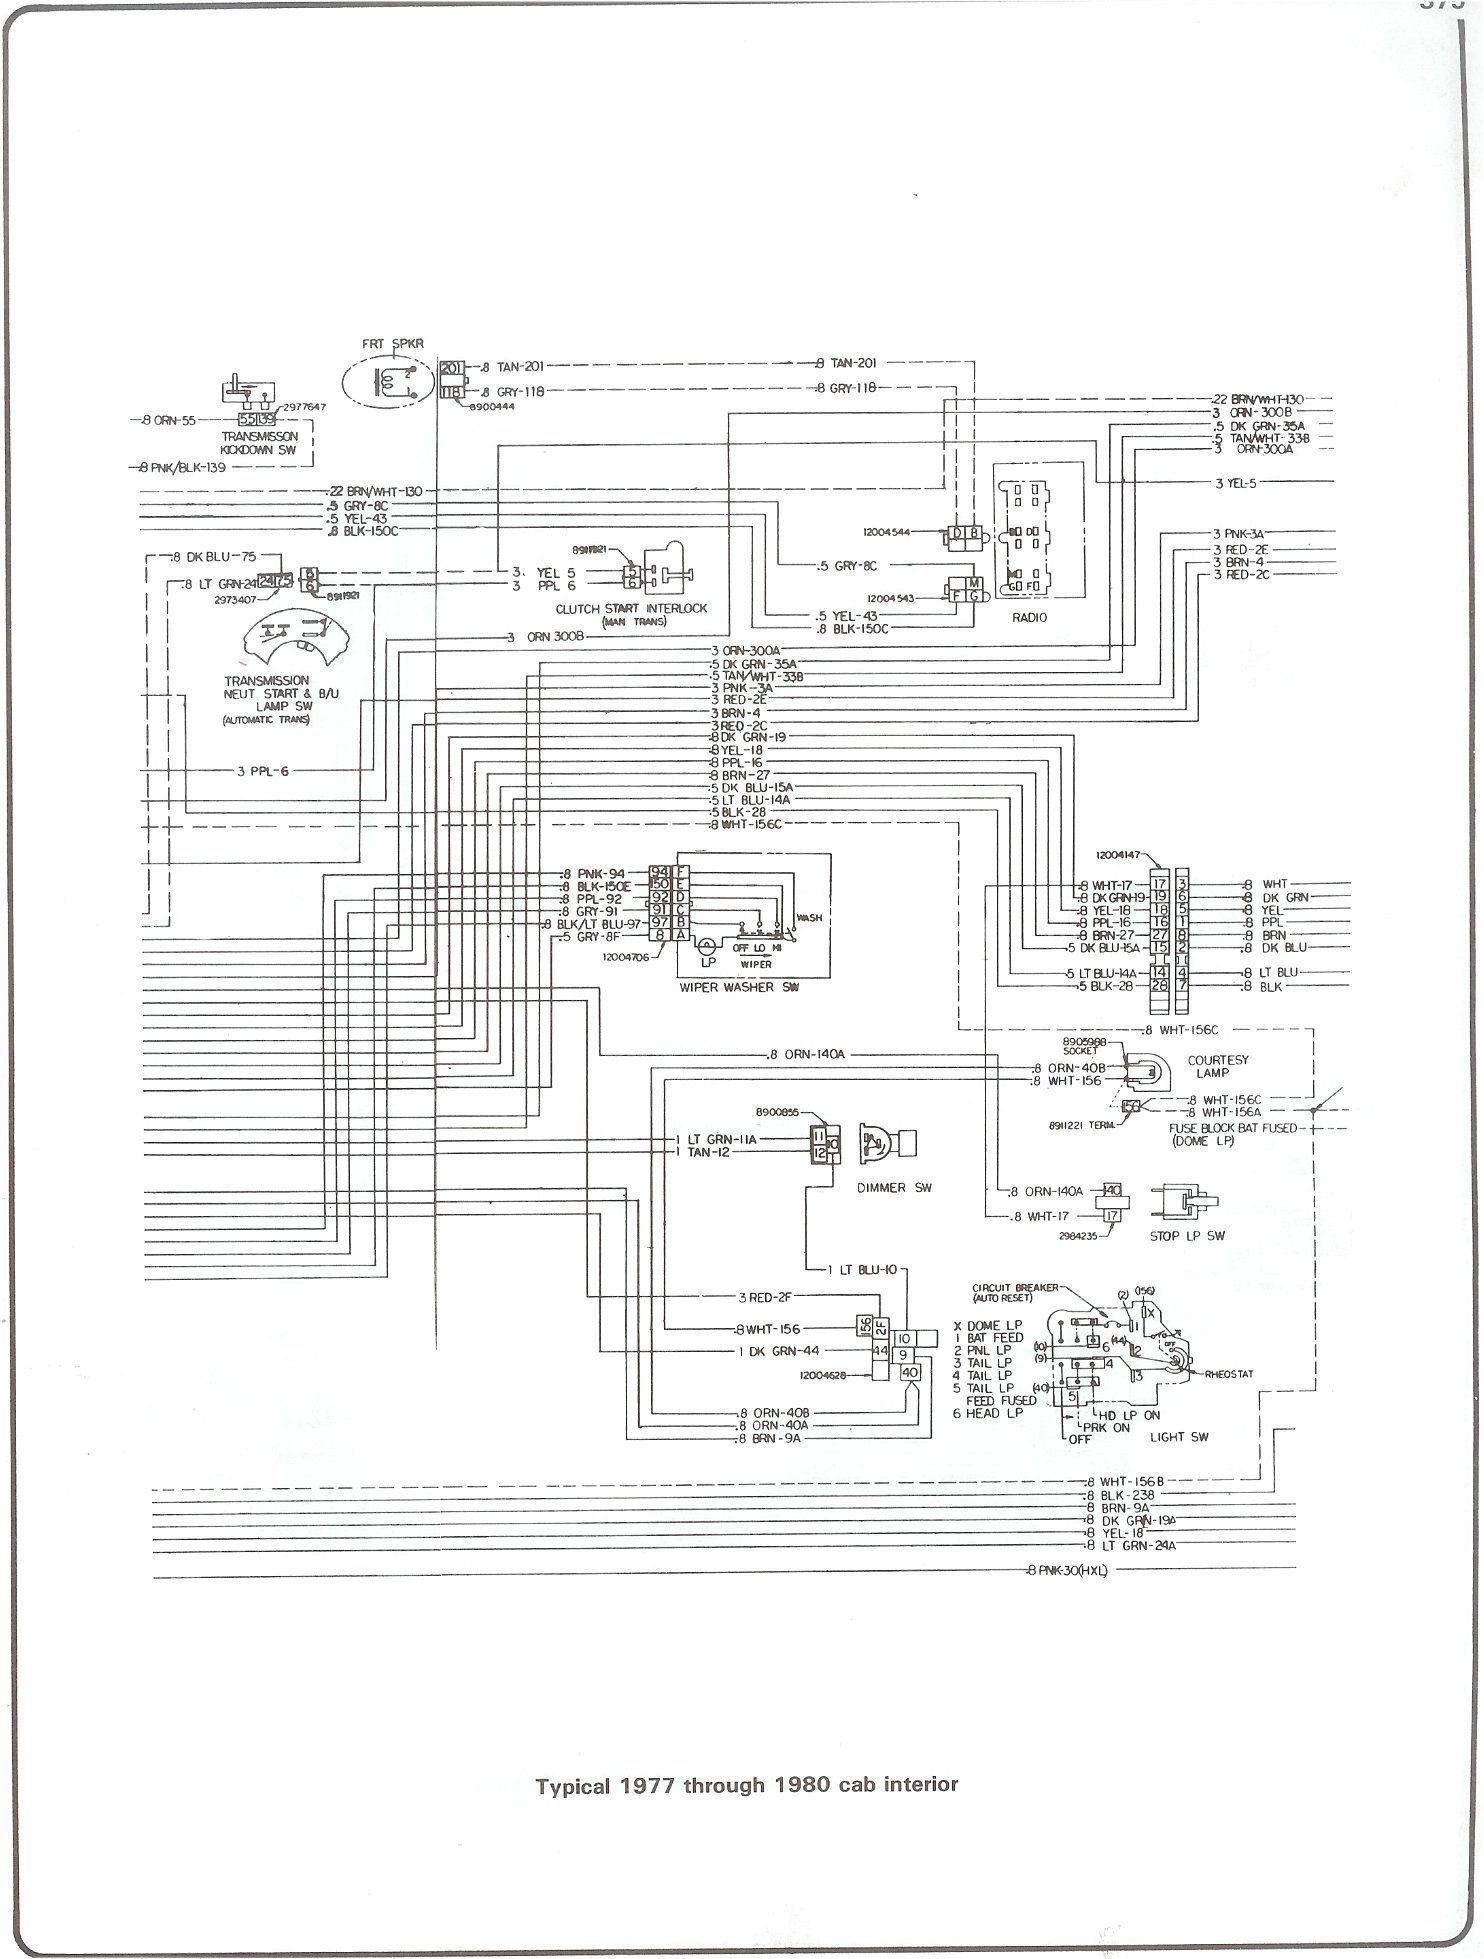 1978 Ford F150 Steering Column Wiring Diagram Just Data For 1987 F250 Truck Harness Content Resource Of U2022 Wire Diagrams